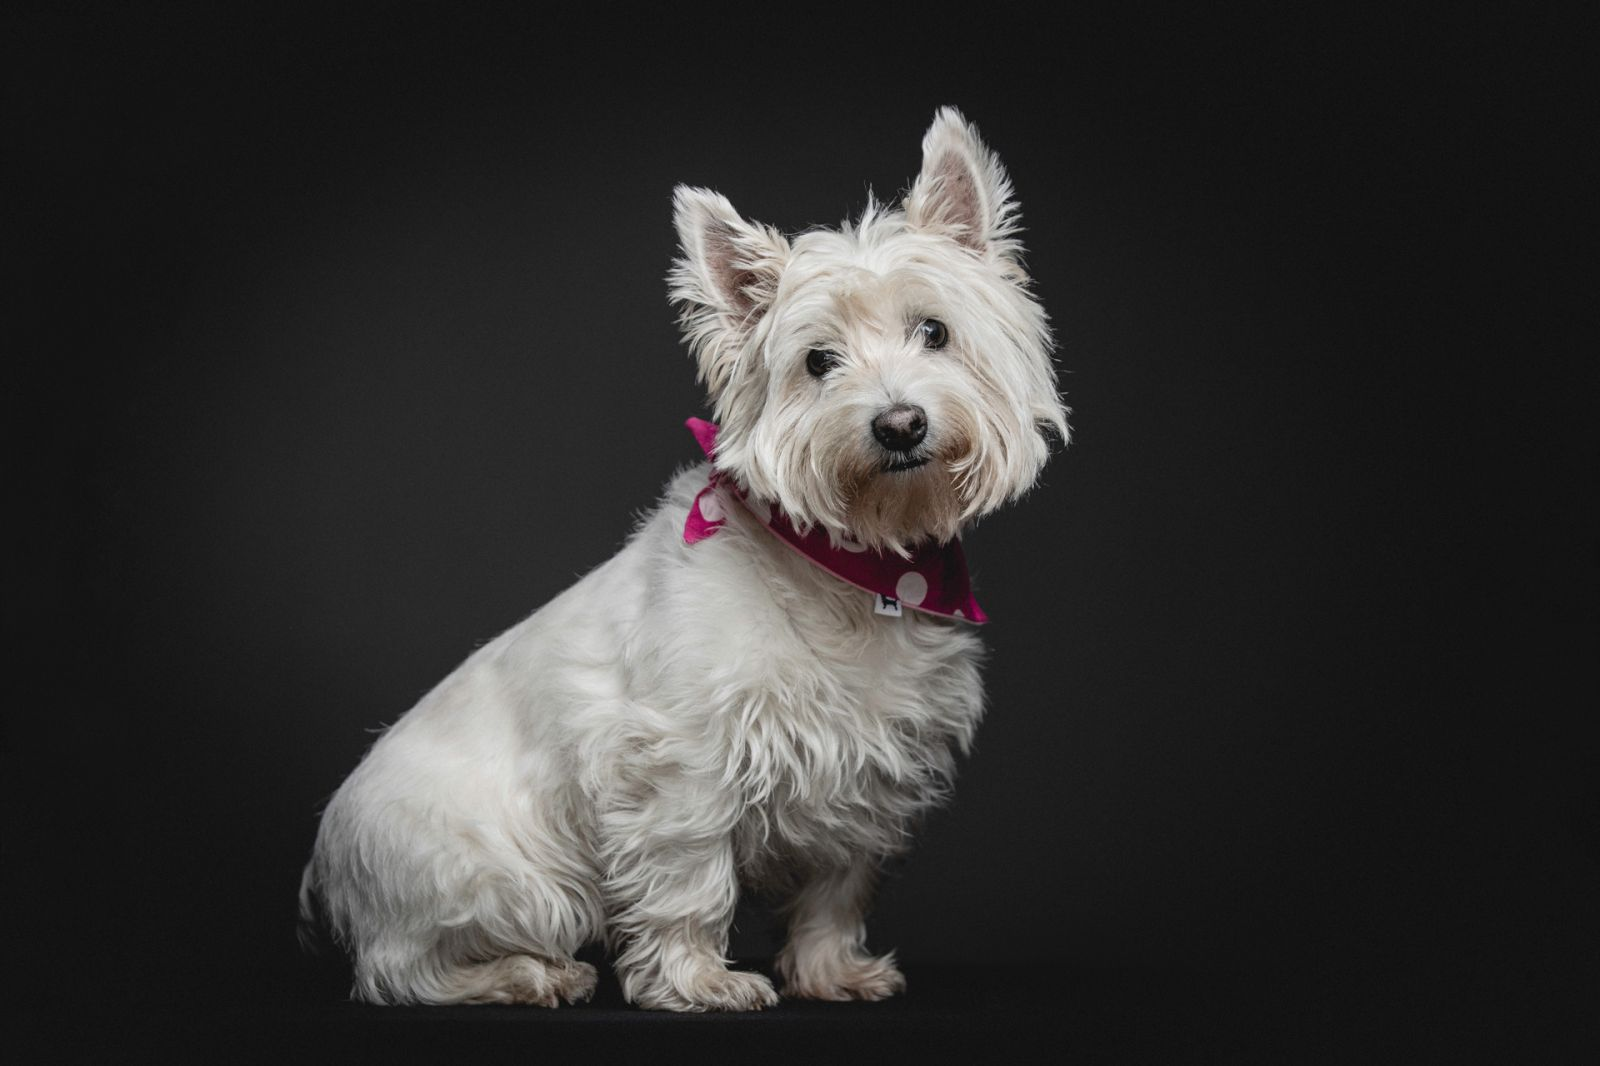 West Highland Terrier Studio Portrait With Pink Bandana